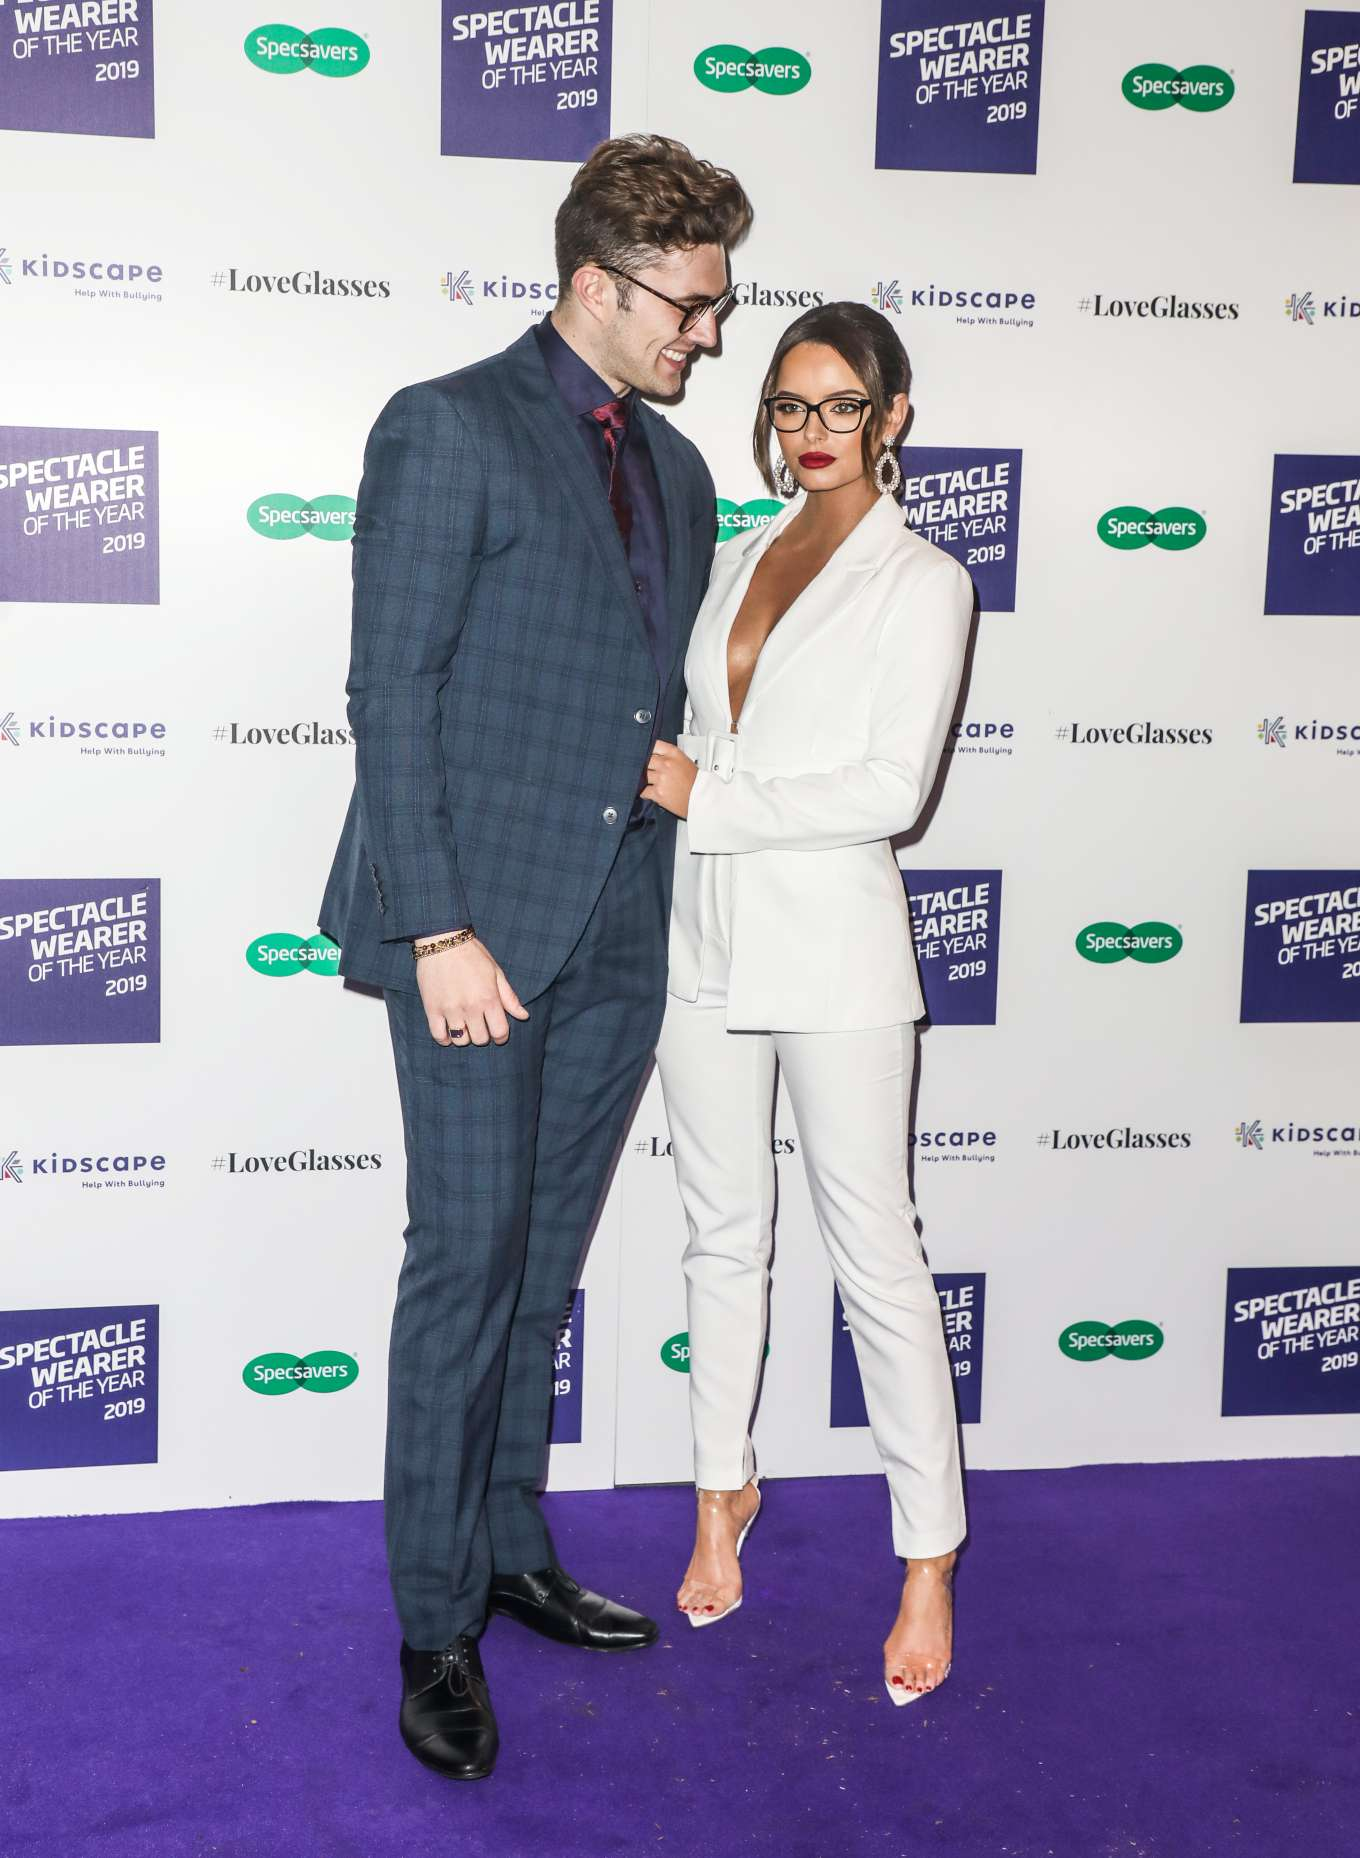 Maura Higgins 2019 : Maura Higgins – Specsavers Spectacle Wearer of the Year Awards 2019-05